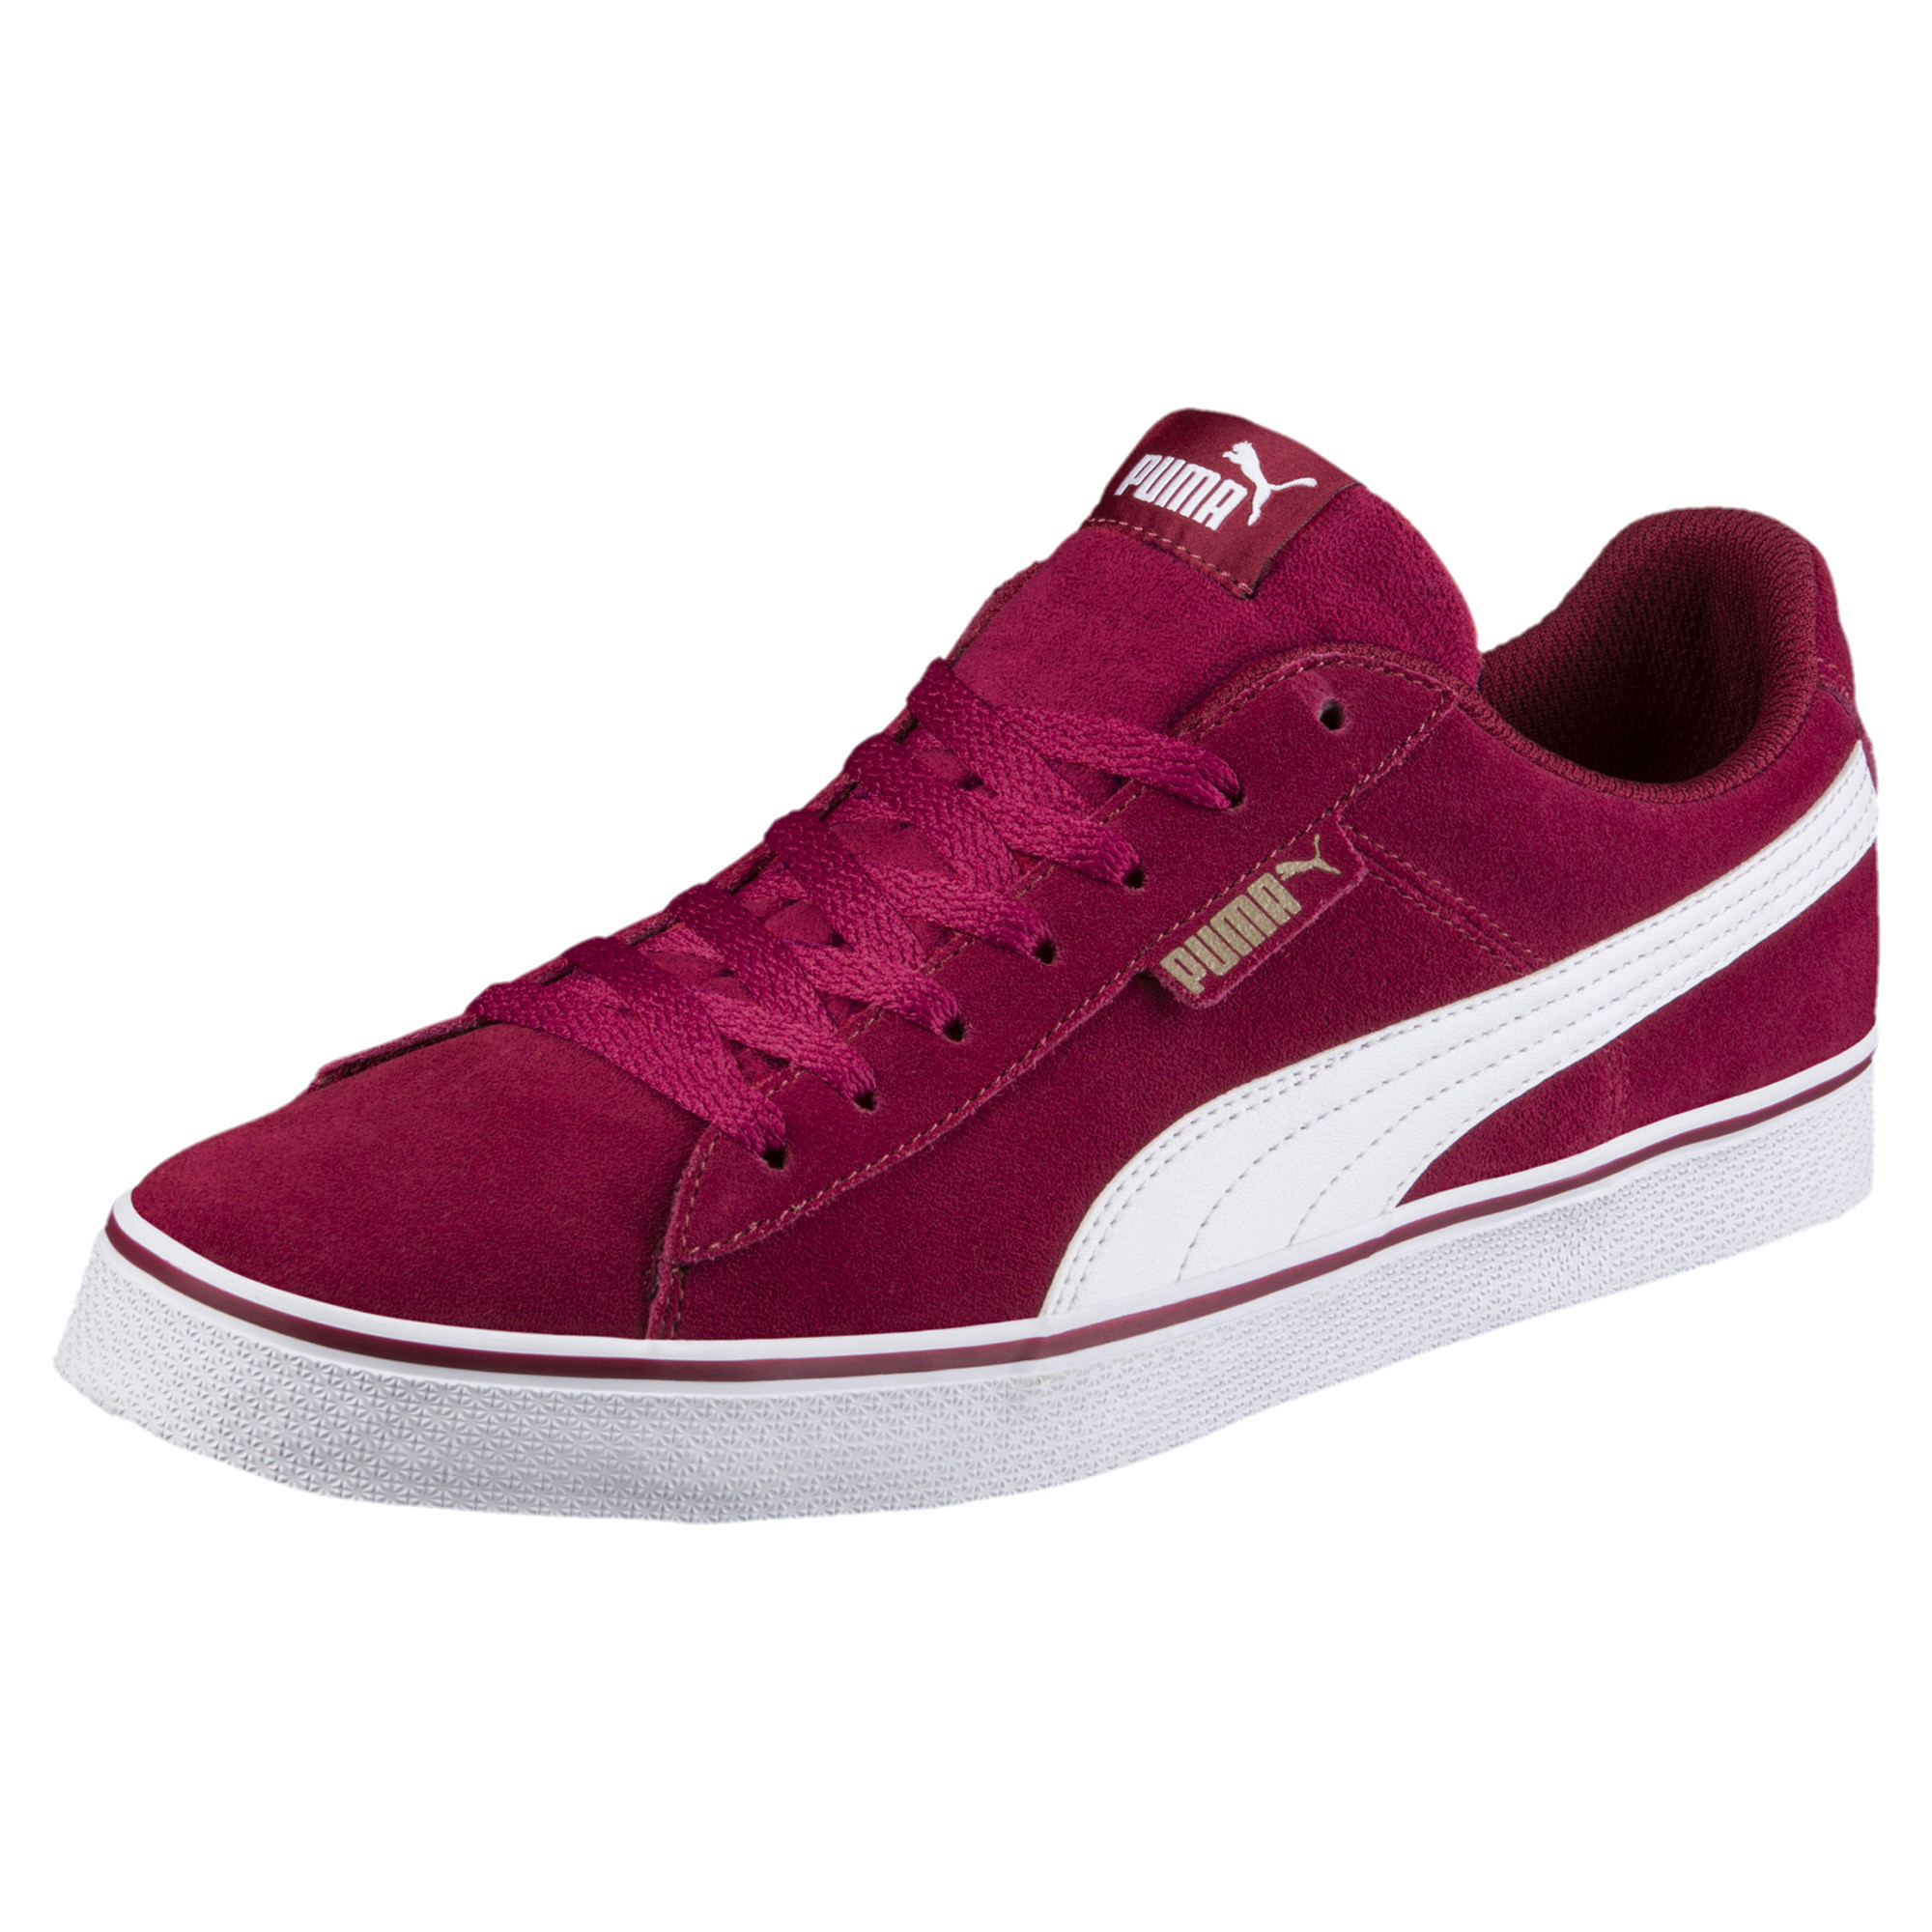 PUMA-Puma-1948-Vulc-Men-s-Sneakers-Men-Shoe-Basics thumbnail 4